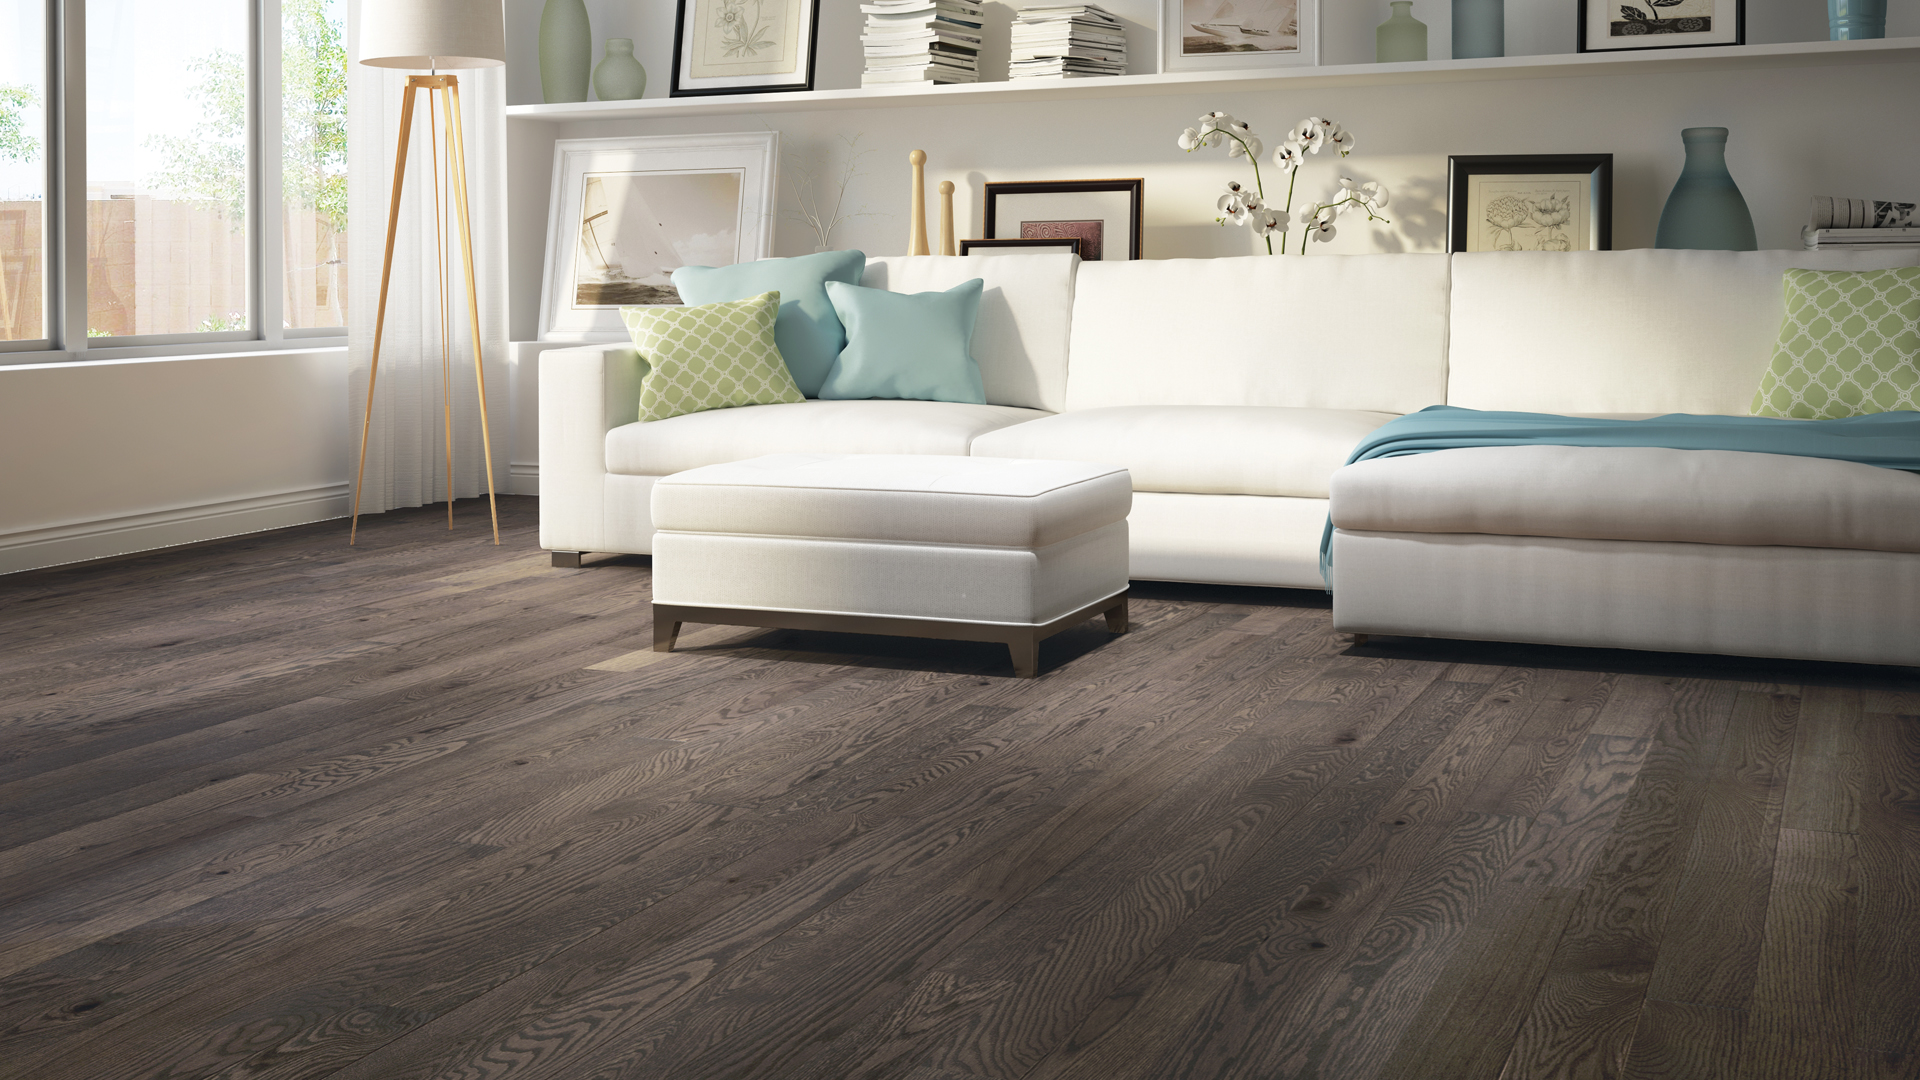 Red oak montpellier | Dubeau hardwood floors | Living room decor